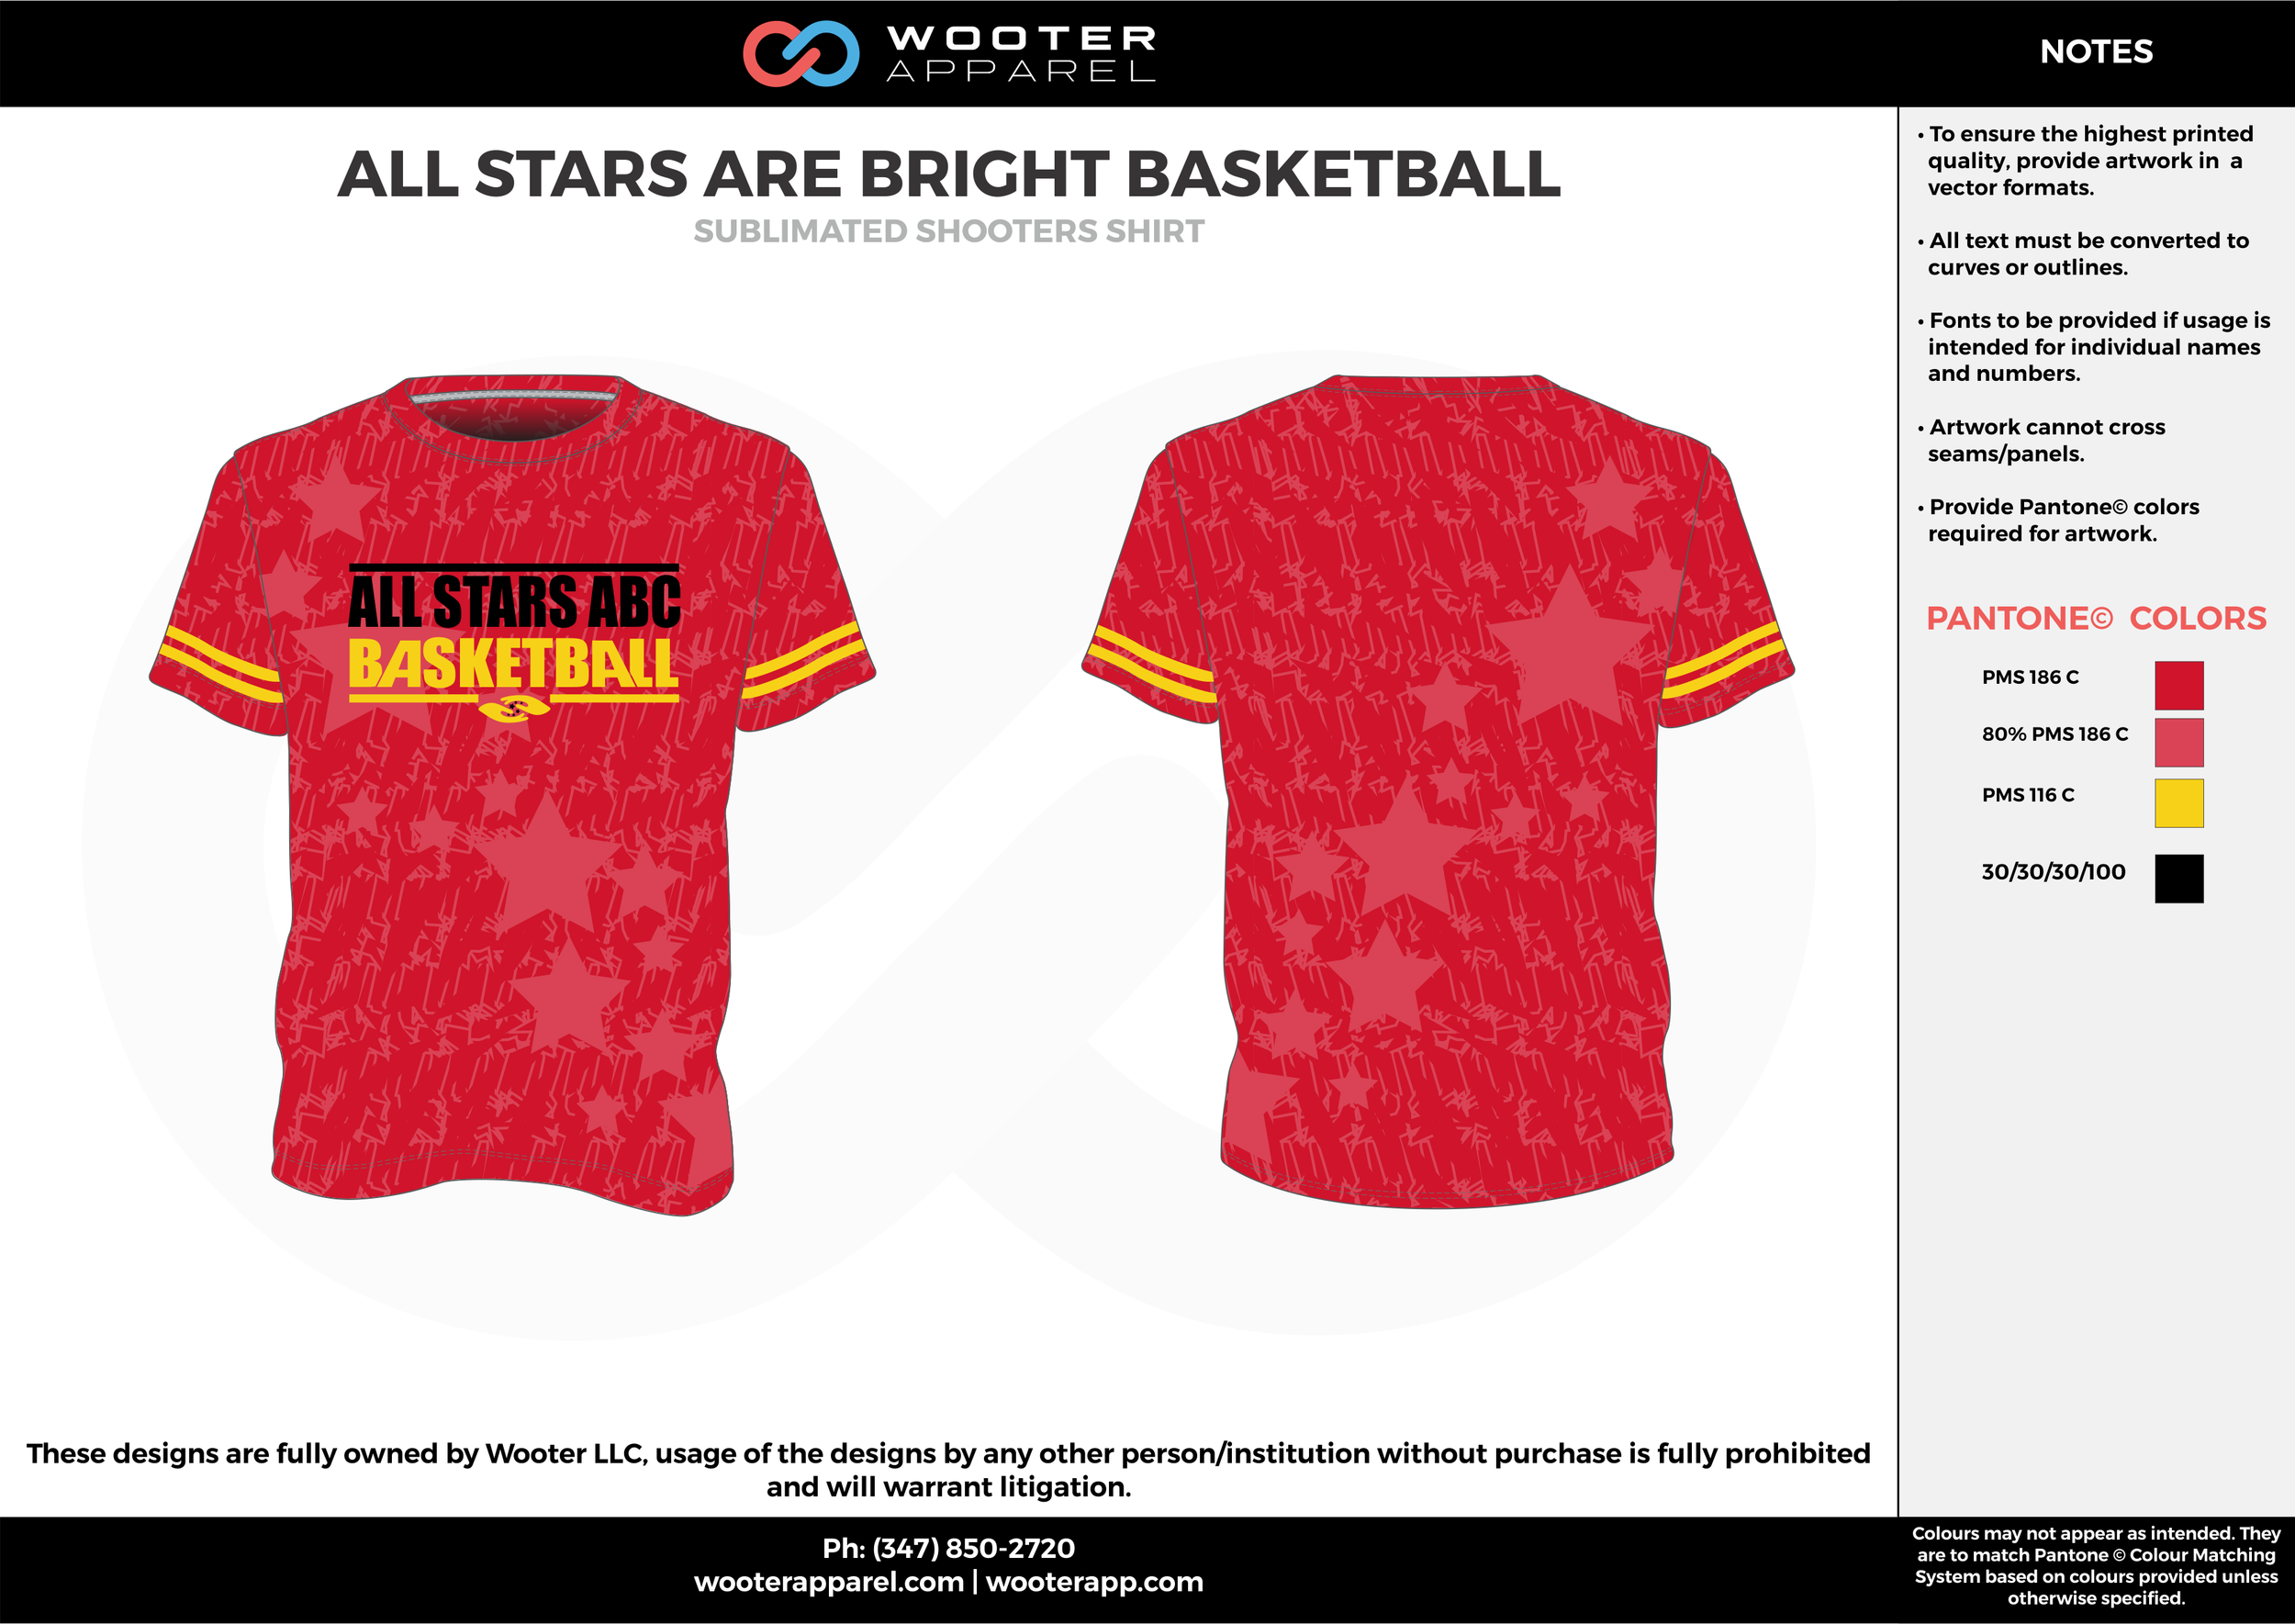 ALL STARS ARE BRIGHT BASKETBALL Red Black and Yellow RICHMOND ELITE ABA Grey Red and White Premium Shooting Shirt